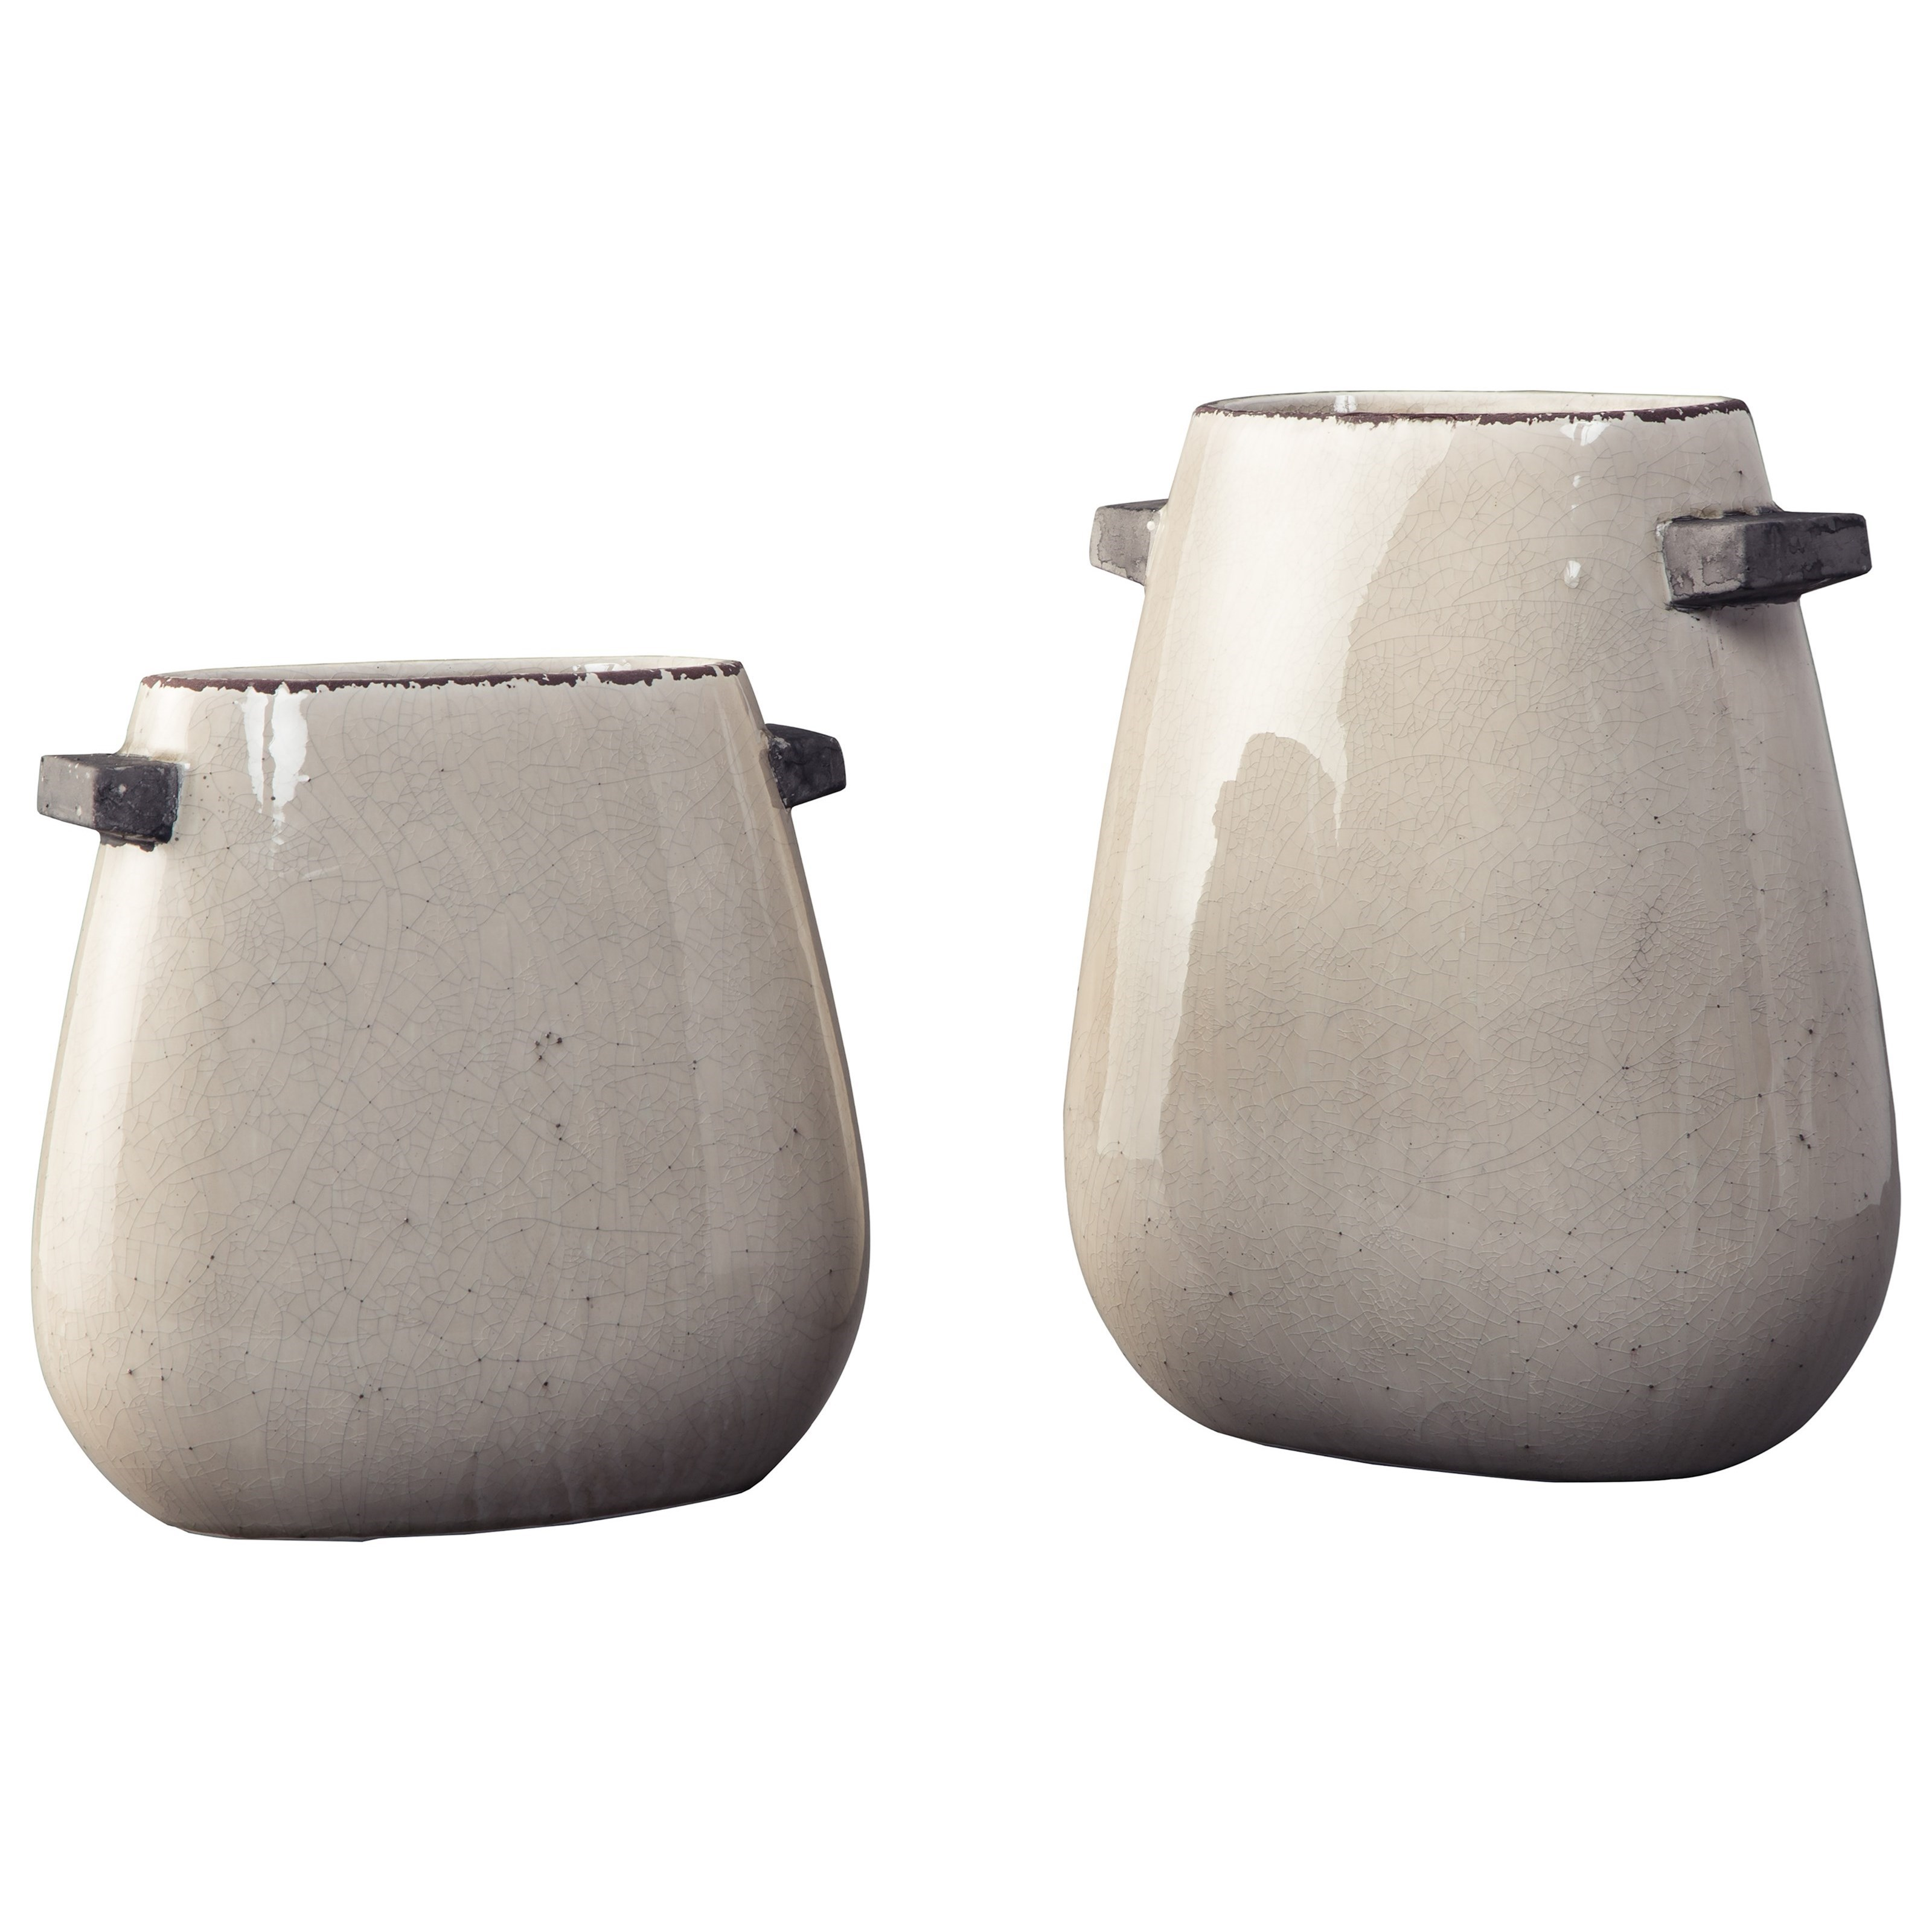 Accents Diah Tan Vase Set by Signature Design by Ashley at Standard Furniture